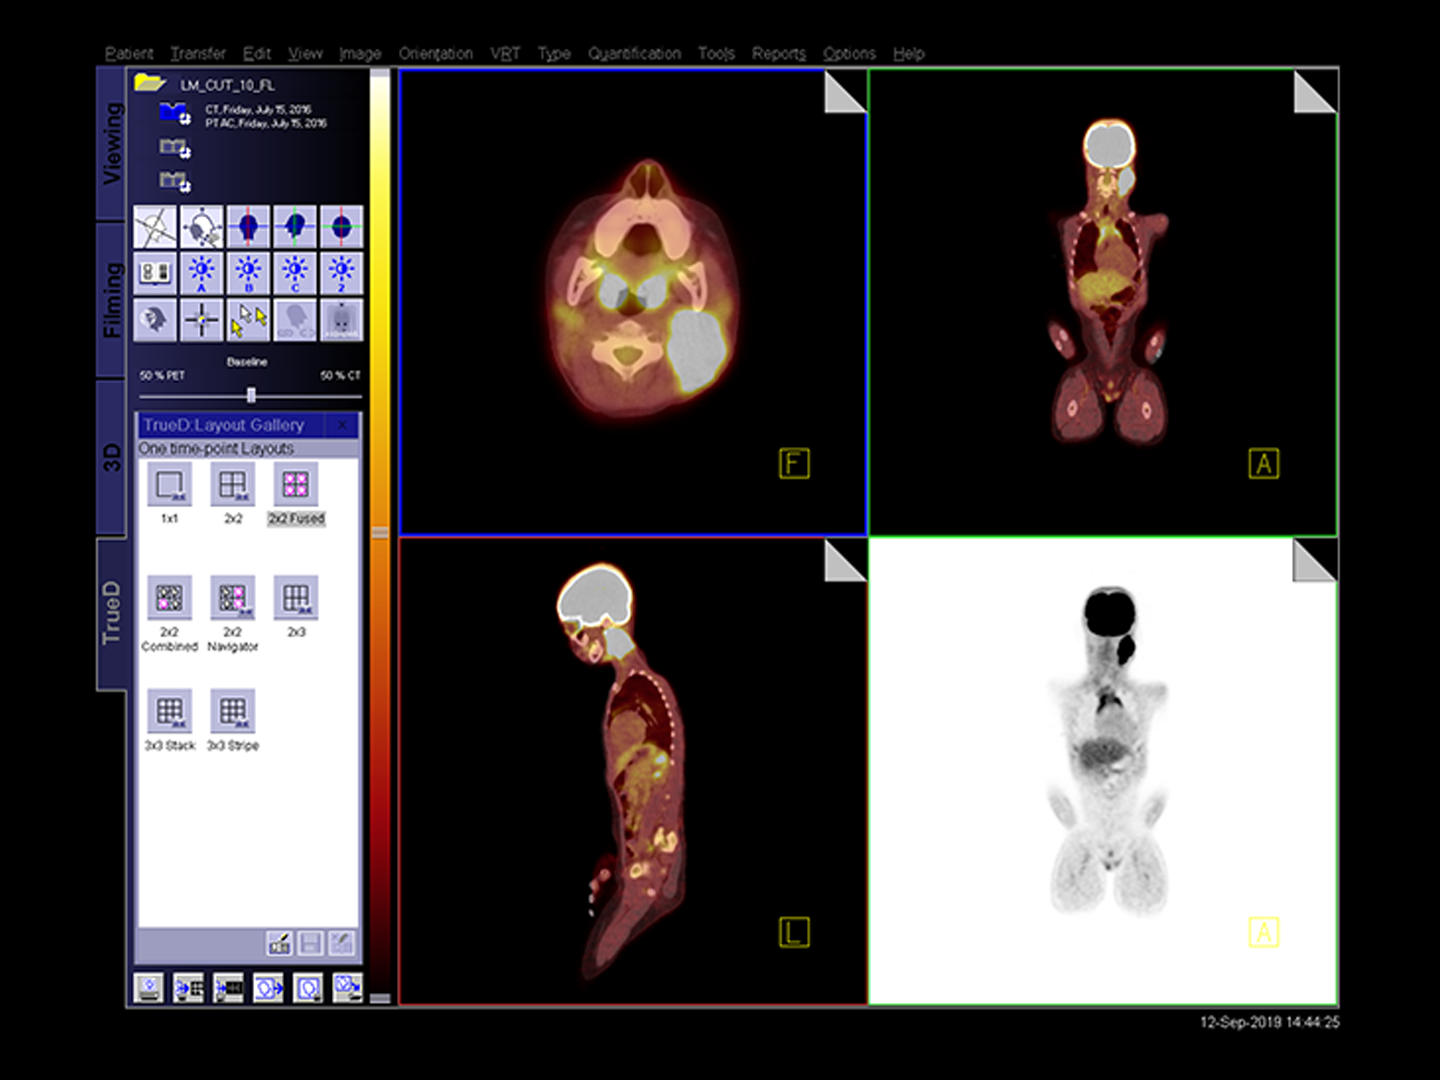 Siemens Healthineers body scan from PET/CT using FAST PET Workflow AI.